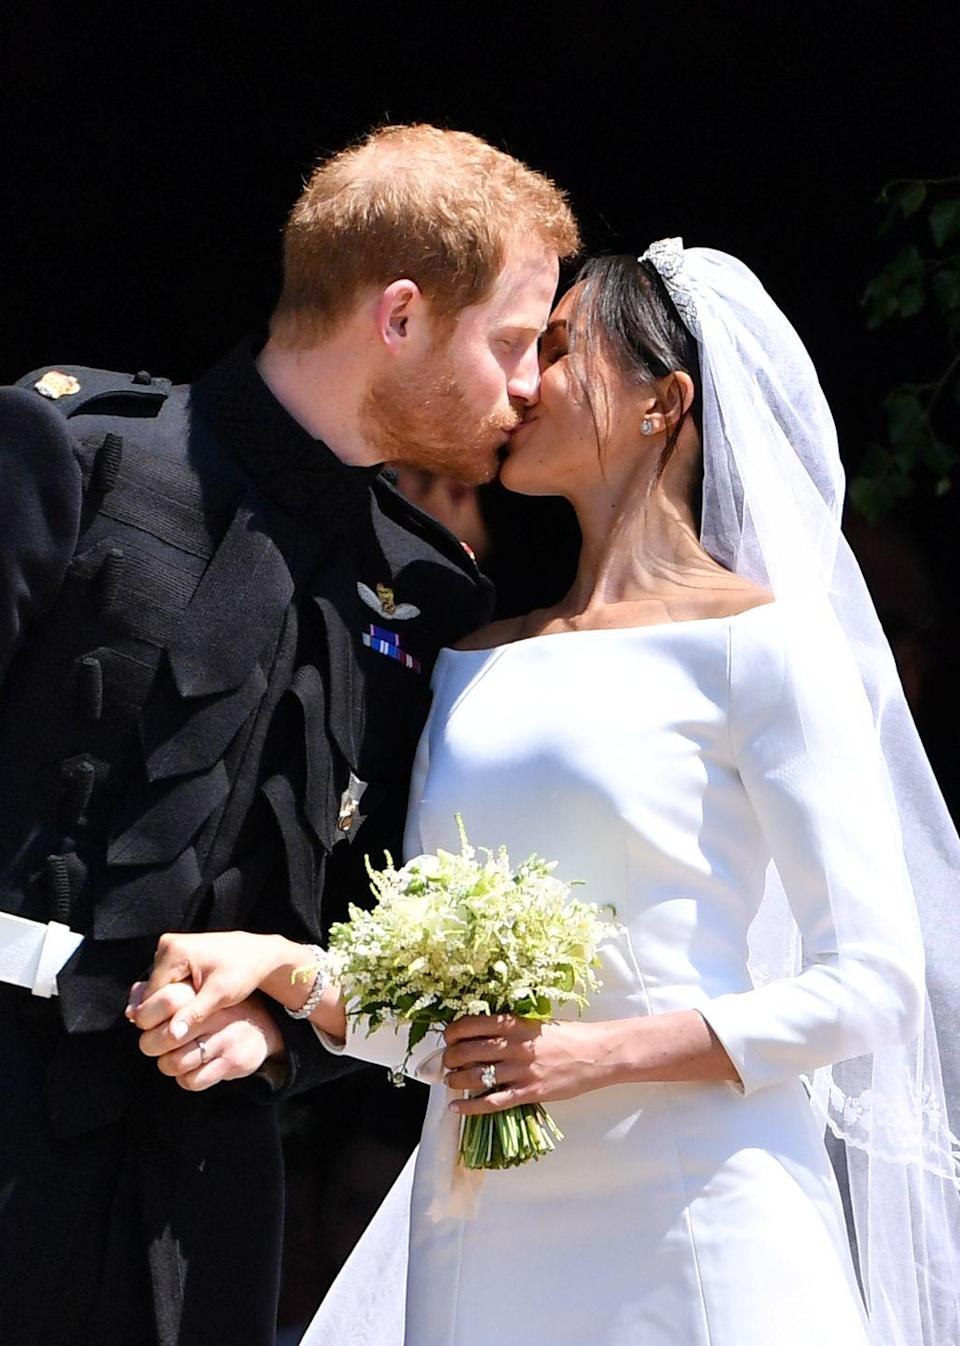 """<p>In a thoughtful tribute to Diana, Meghan's bouquet was filled with spring flowers full of personal meaning to the couple. According to a <a href=""""https://www.royal.uk/wedding-dress-bridesmaids%E2%80%99-dresses-and-page-boys-uniforms"""" rel=""""nofollow noopener"""" target=""""_blank"""" data-ylk=""""slk:palace statement"""" class=""""link rapid-noclick-resp"""">palace statement</a>, Prince Harry handpicked several flowers from their private garden at Kensington Palace. The most notable were Forget-Me-Nots, which were Diana's favorite flower. What a tender gesture! </p>"""